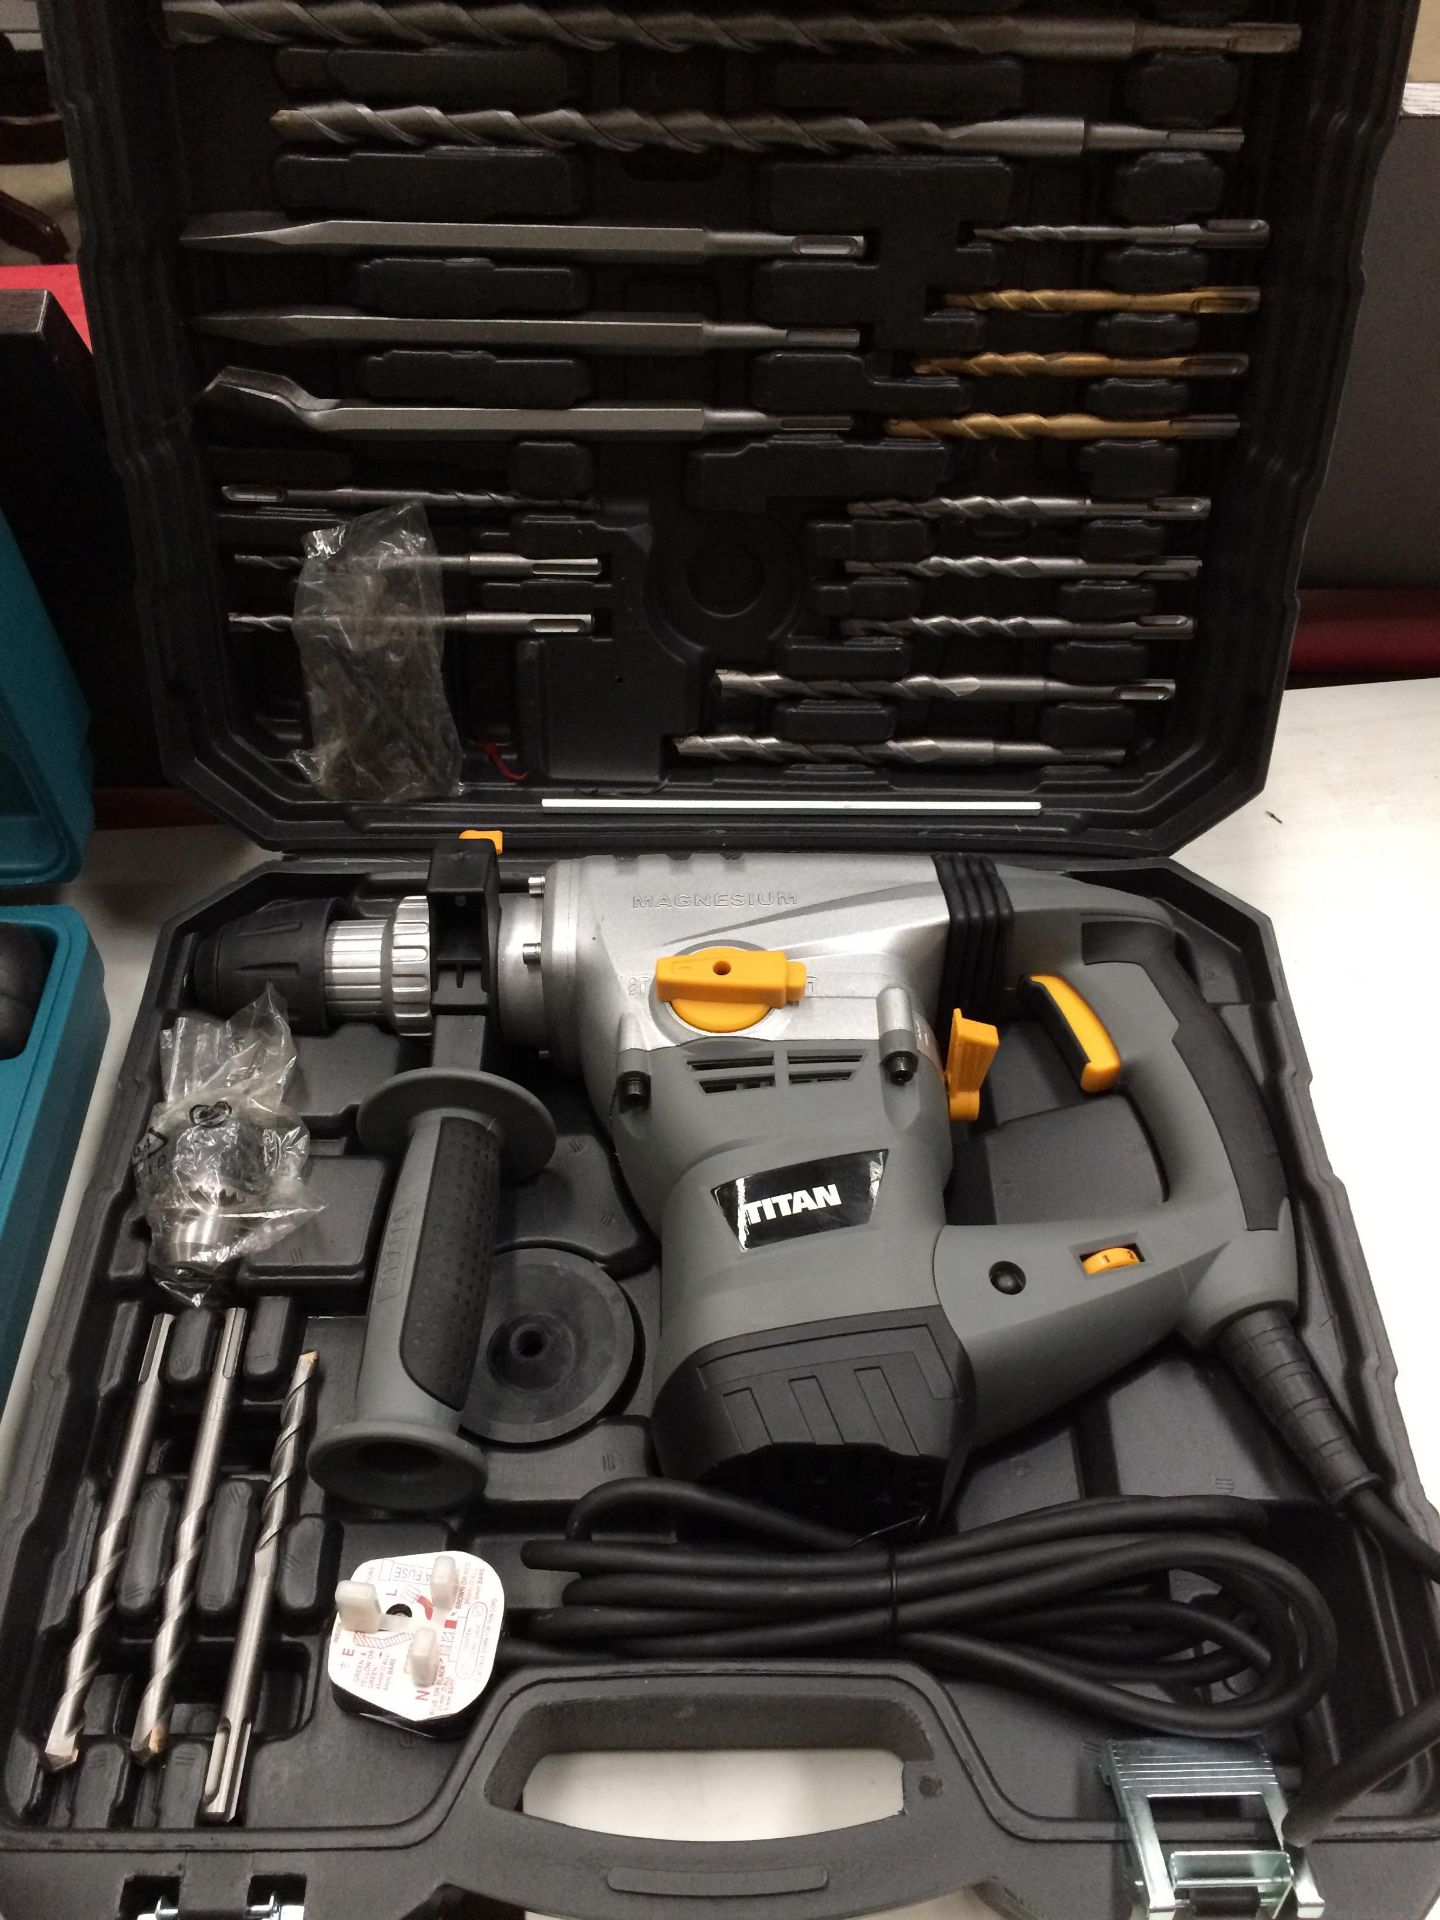 Titan TTB6315DS 1500w SDS Plus Rotary hammer drill 240v in case complete with SDS bits etc.